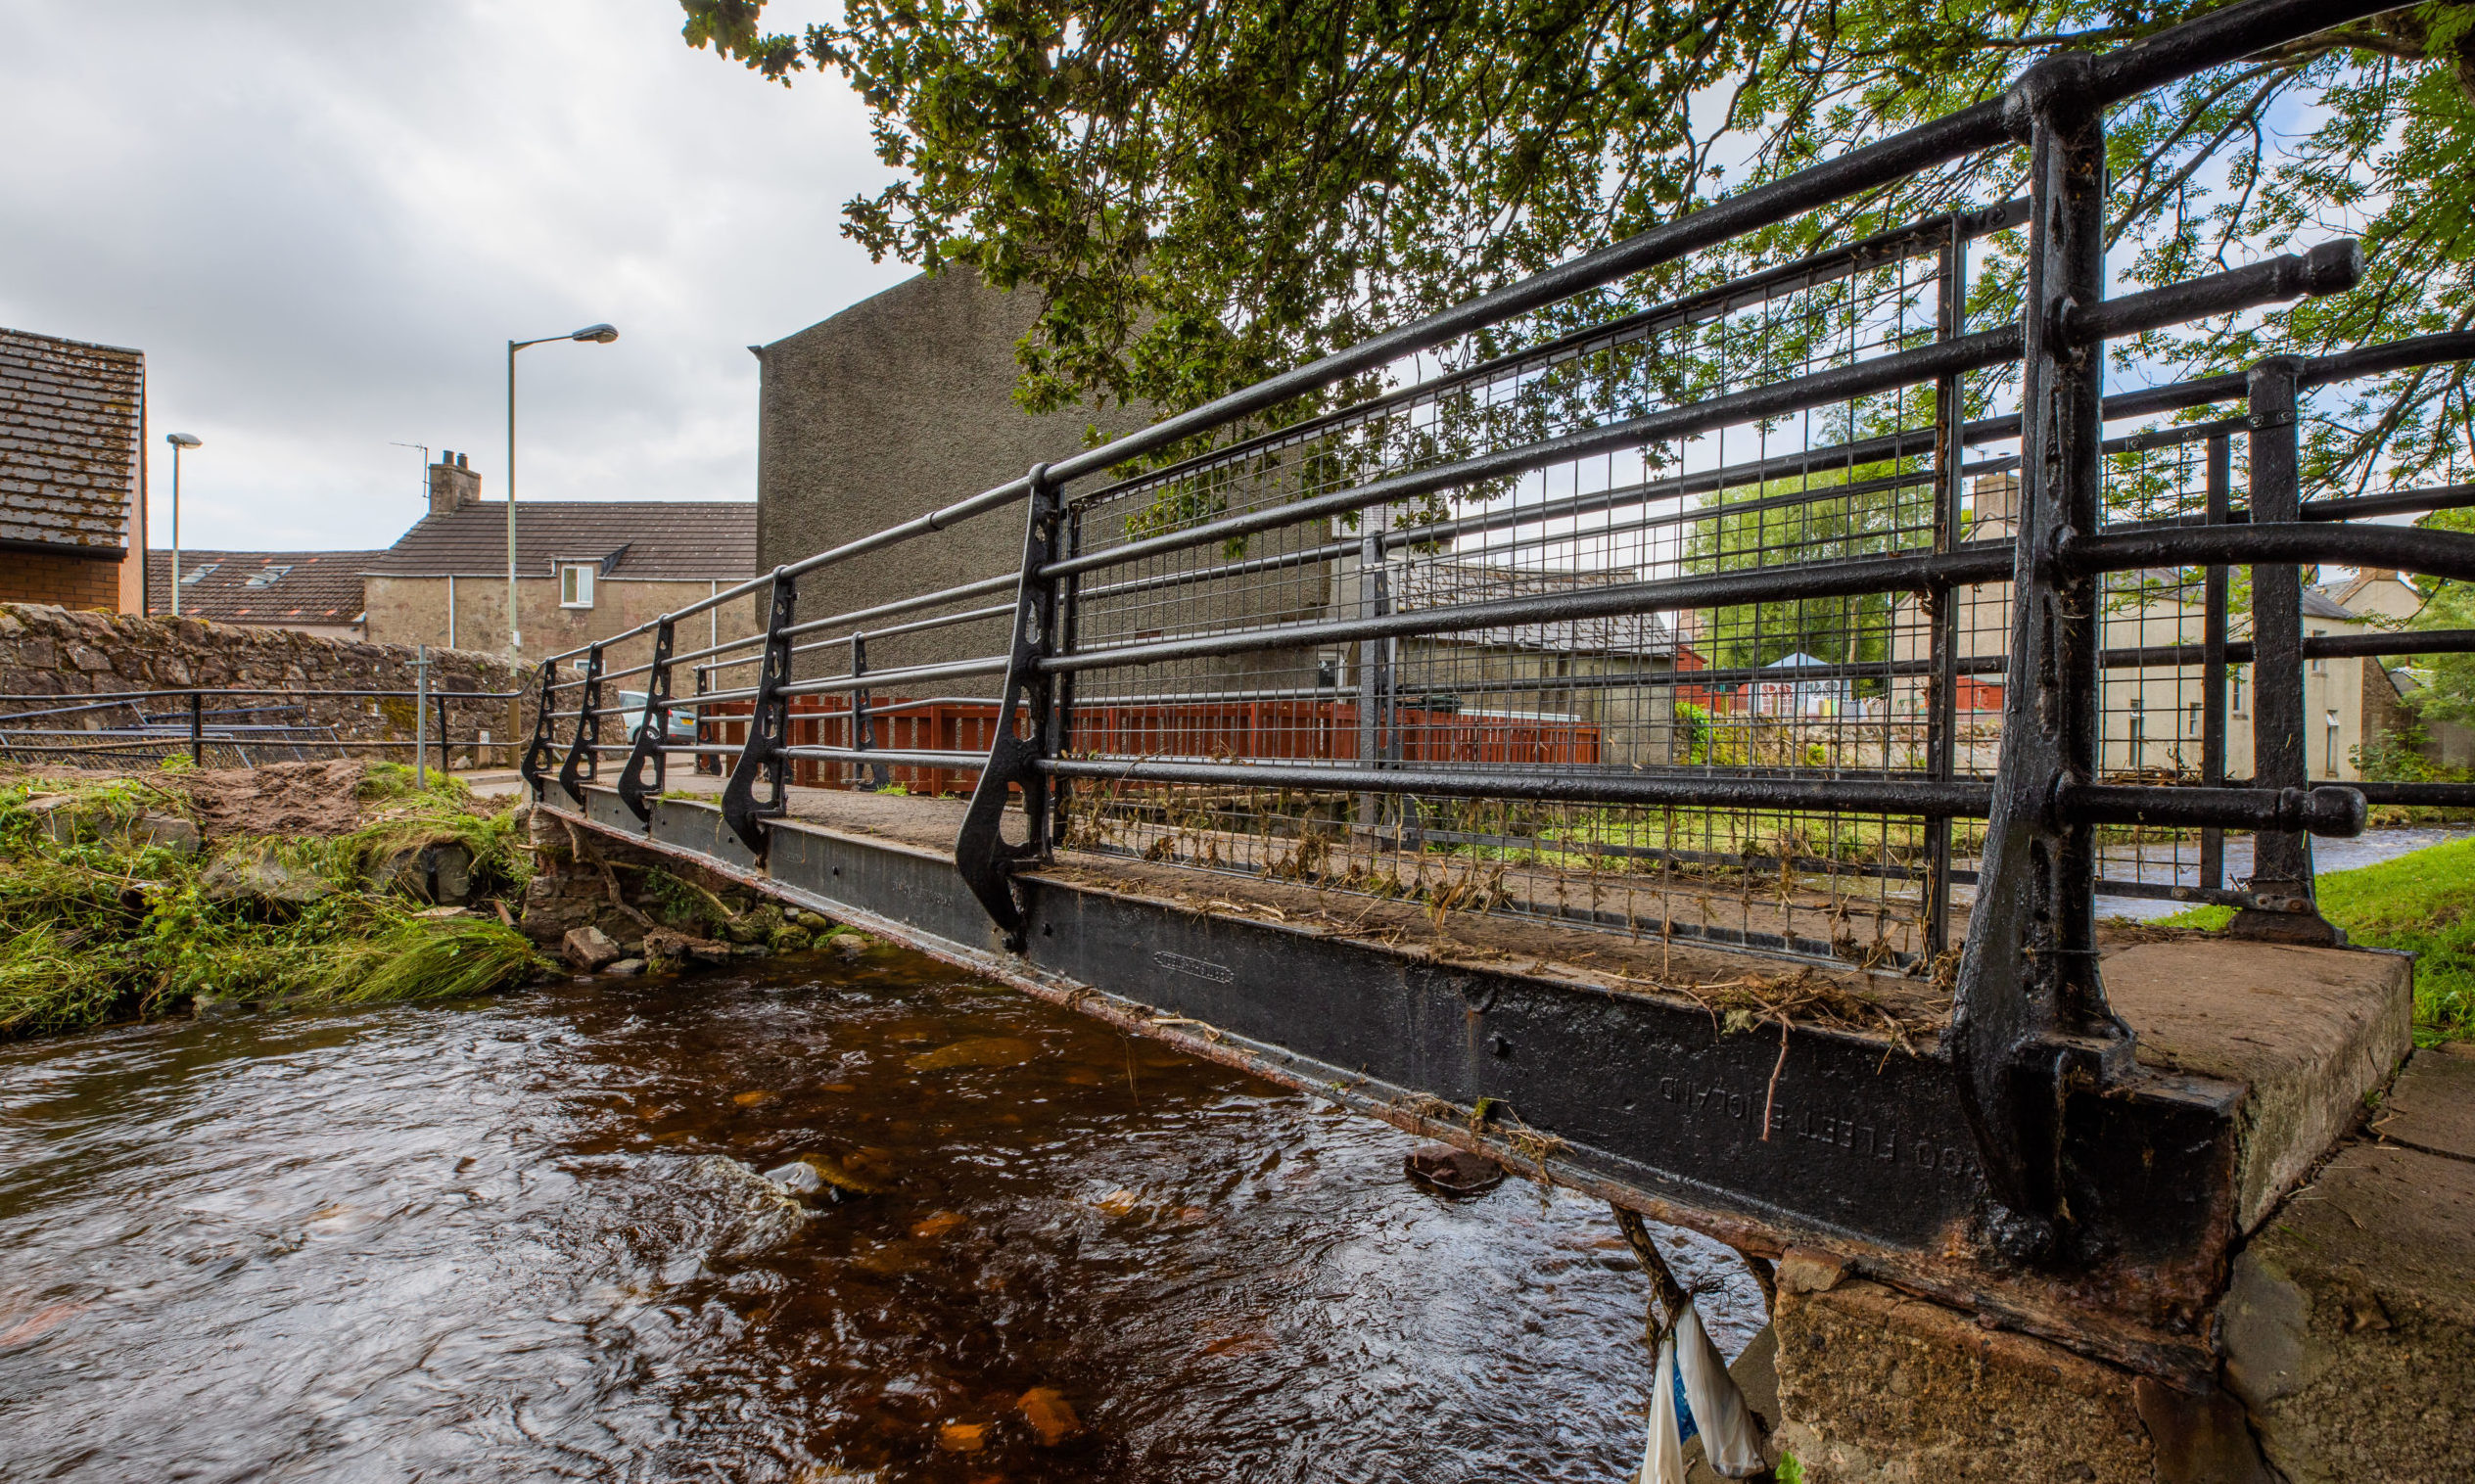 The bridge between David Street and Mill Street, with most of the mesh barriers removed